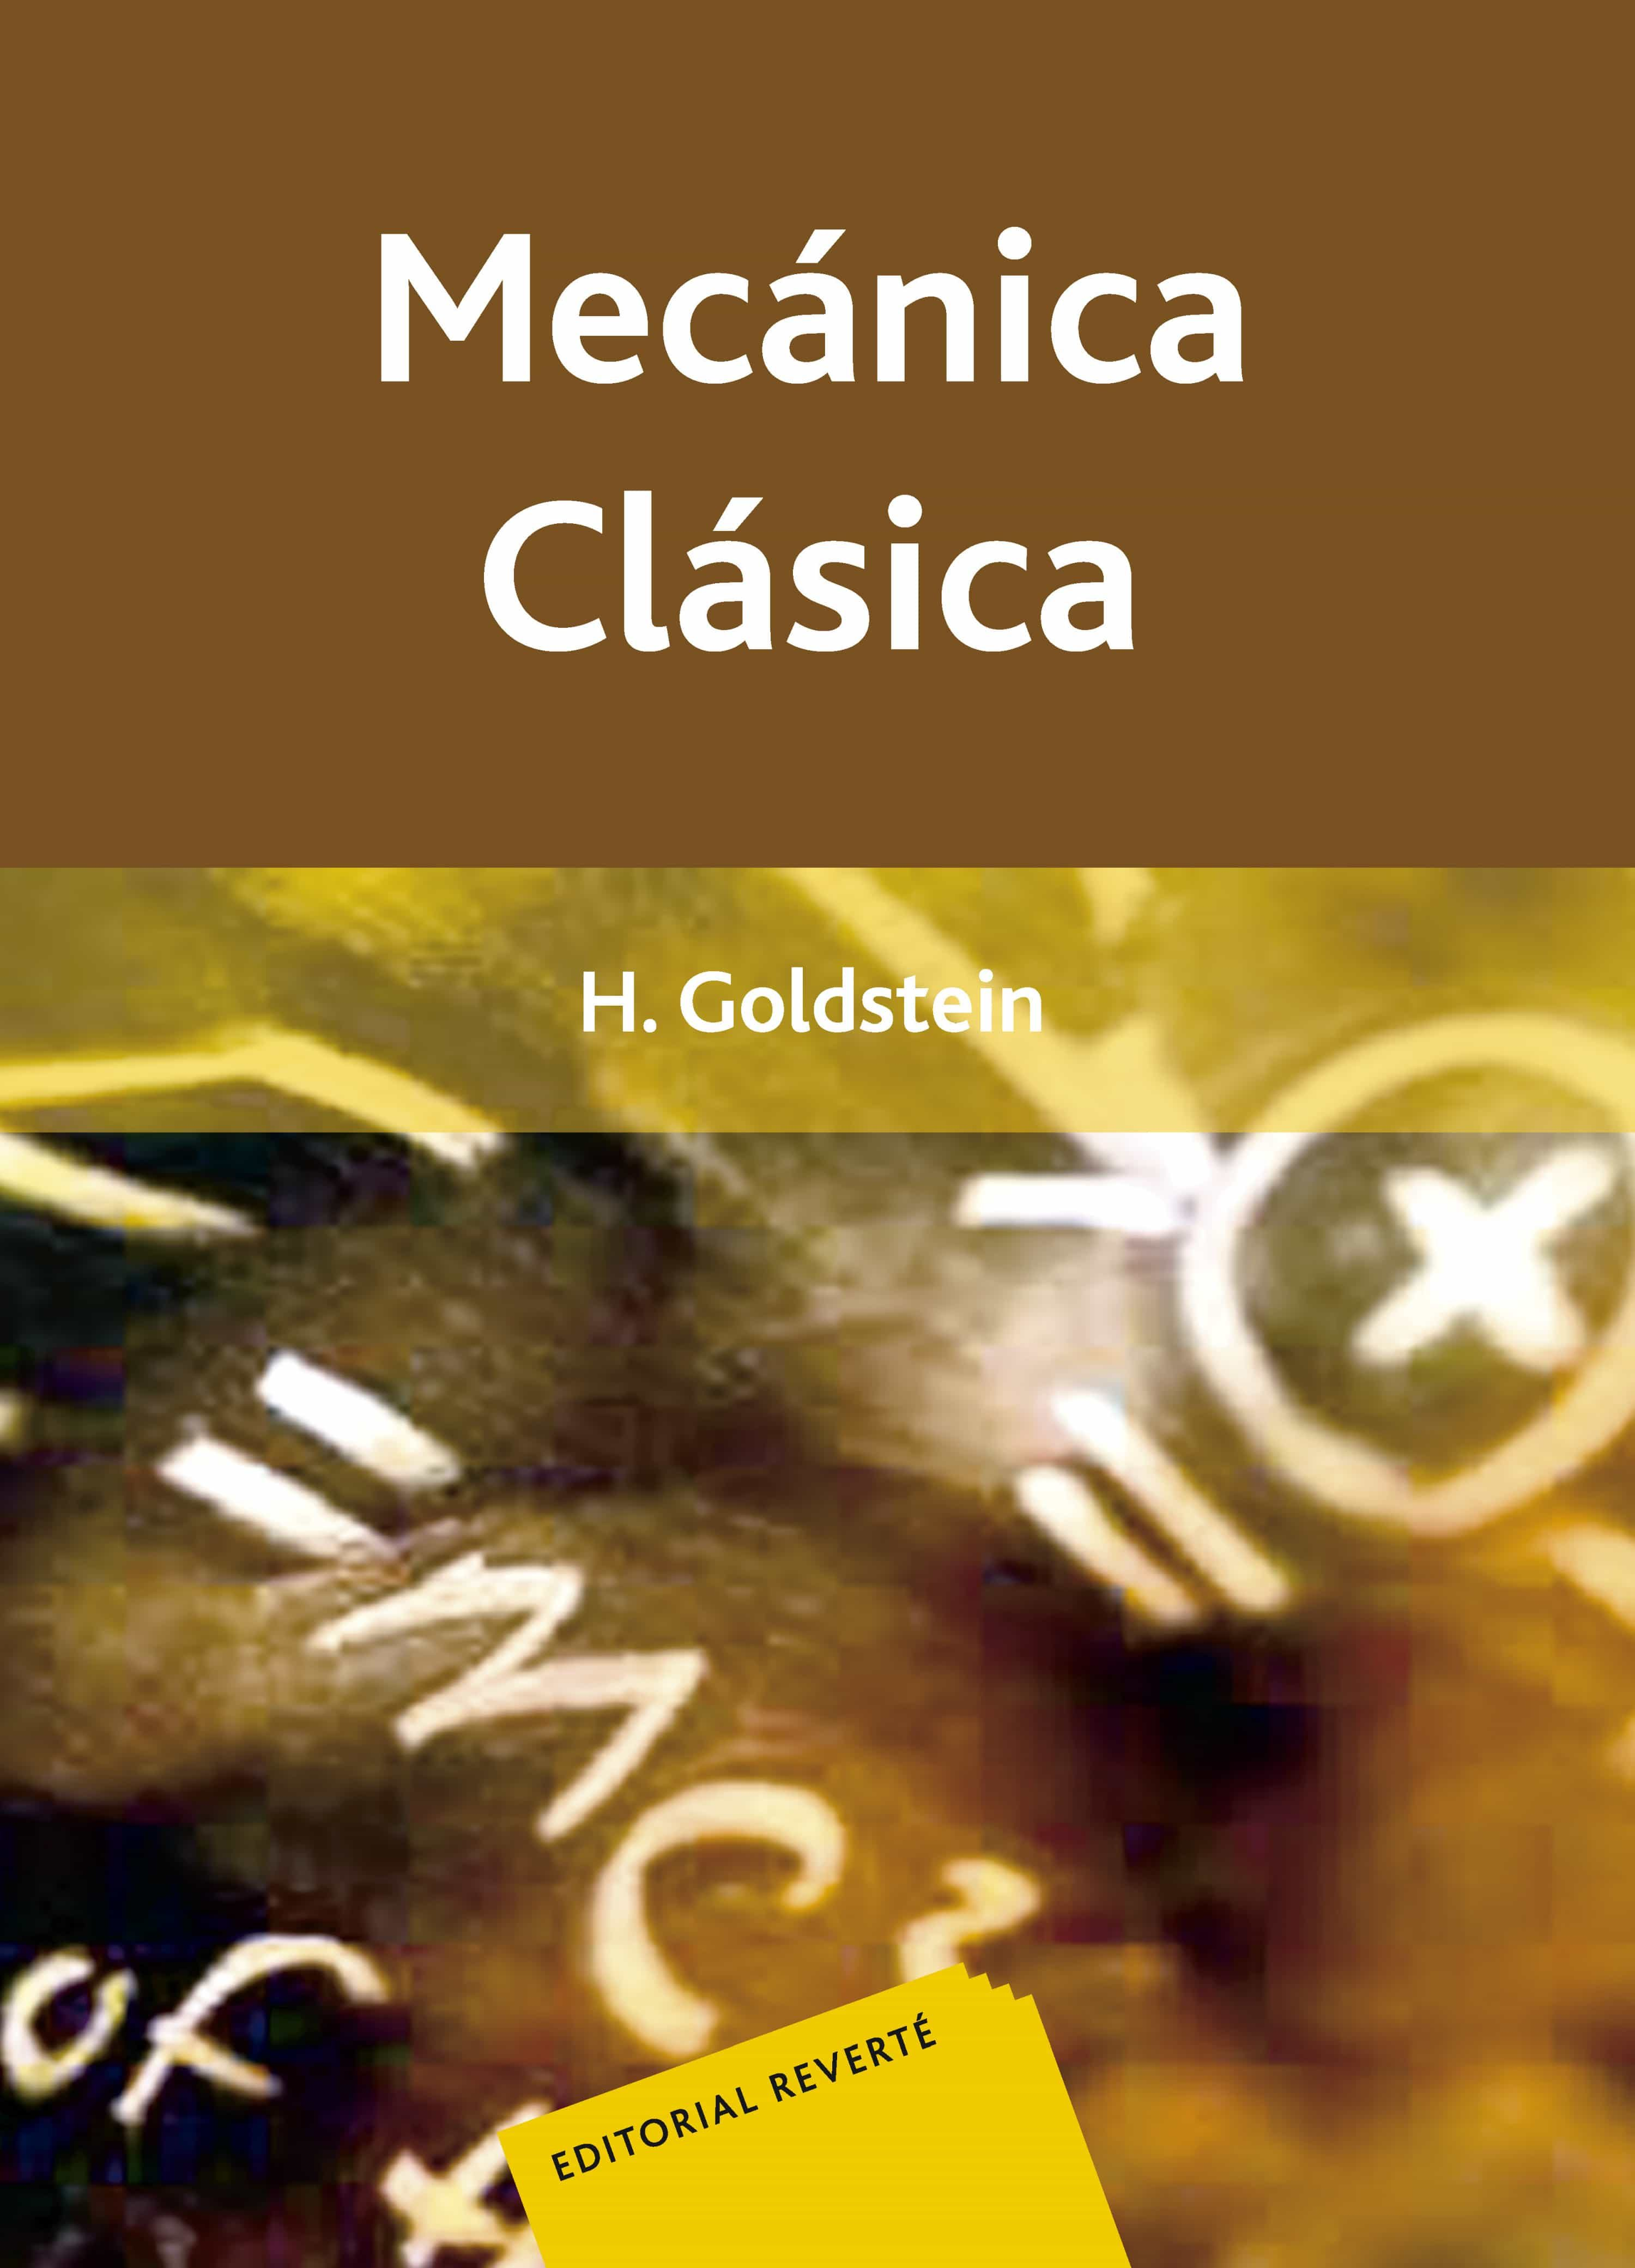 mecanica teorica goldstein pdf download